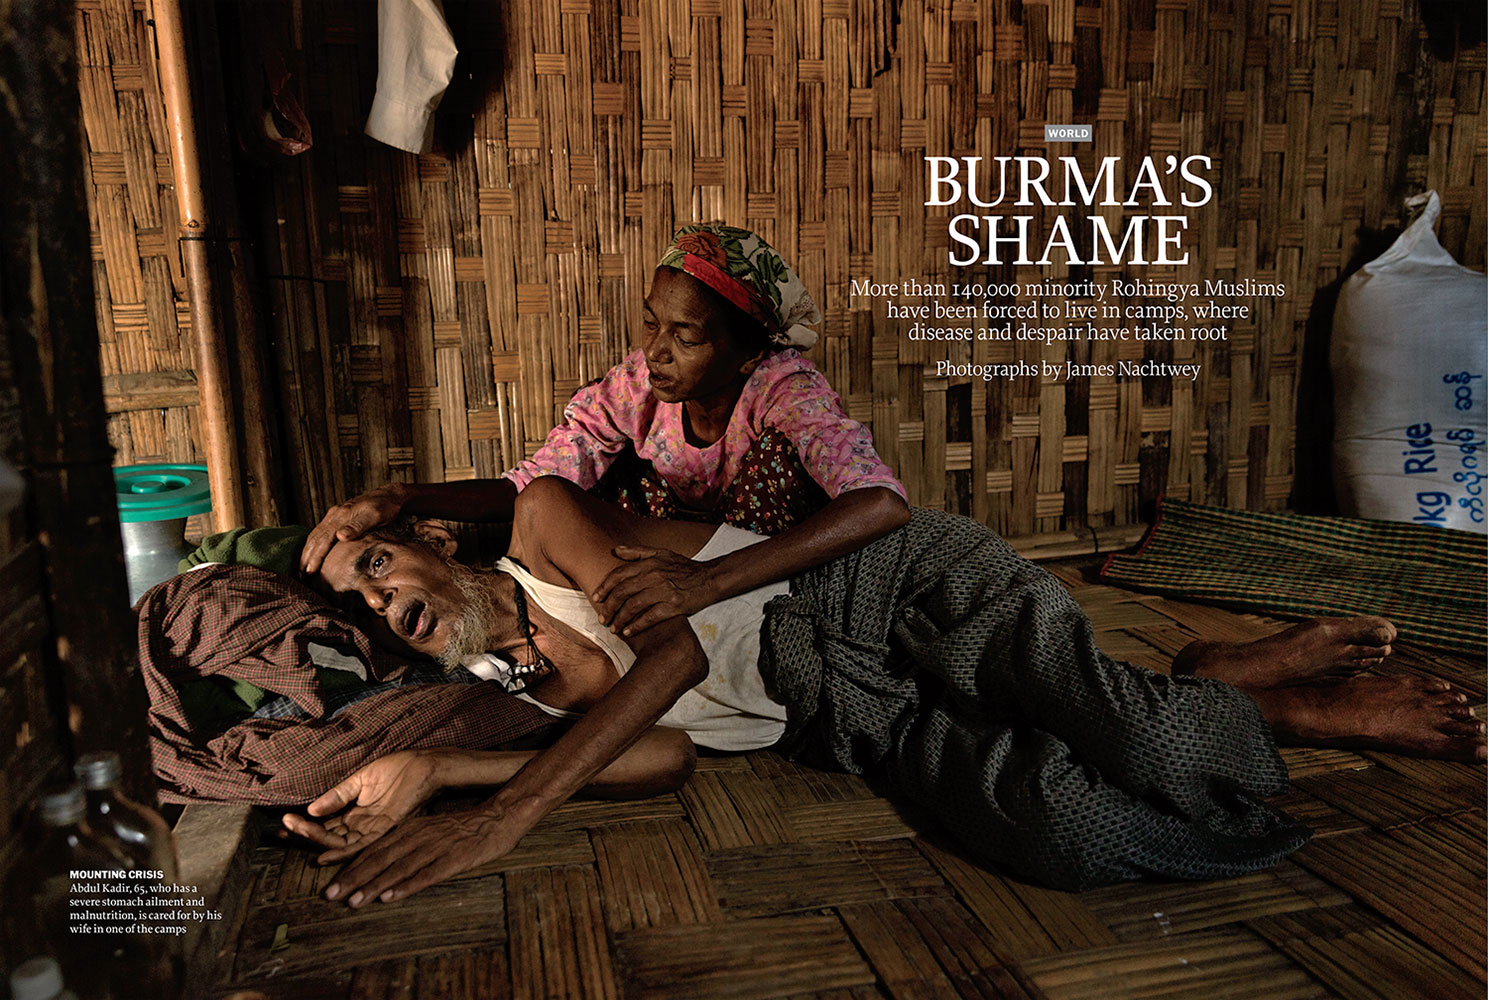 From  Burma's Shame.  July 21, 2014 issue.